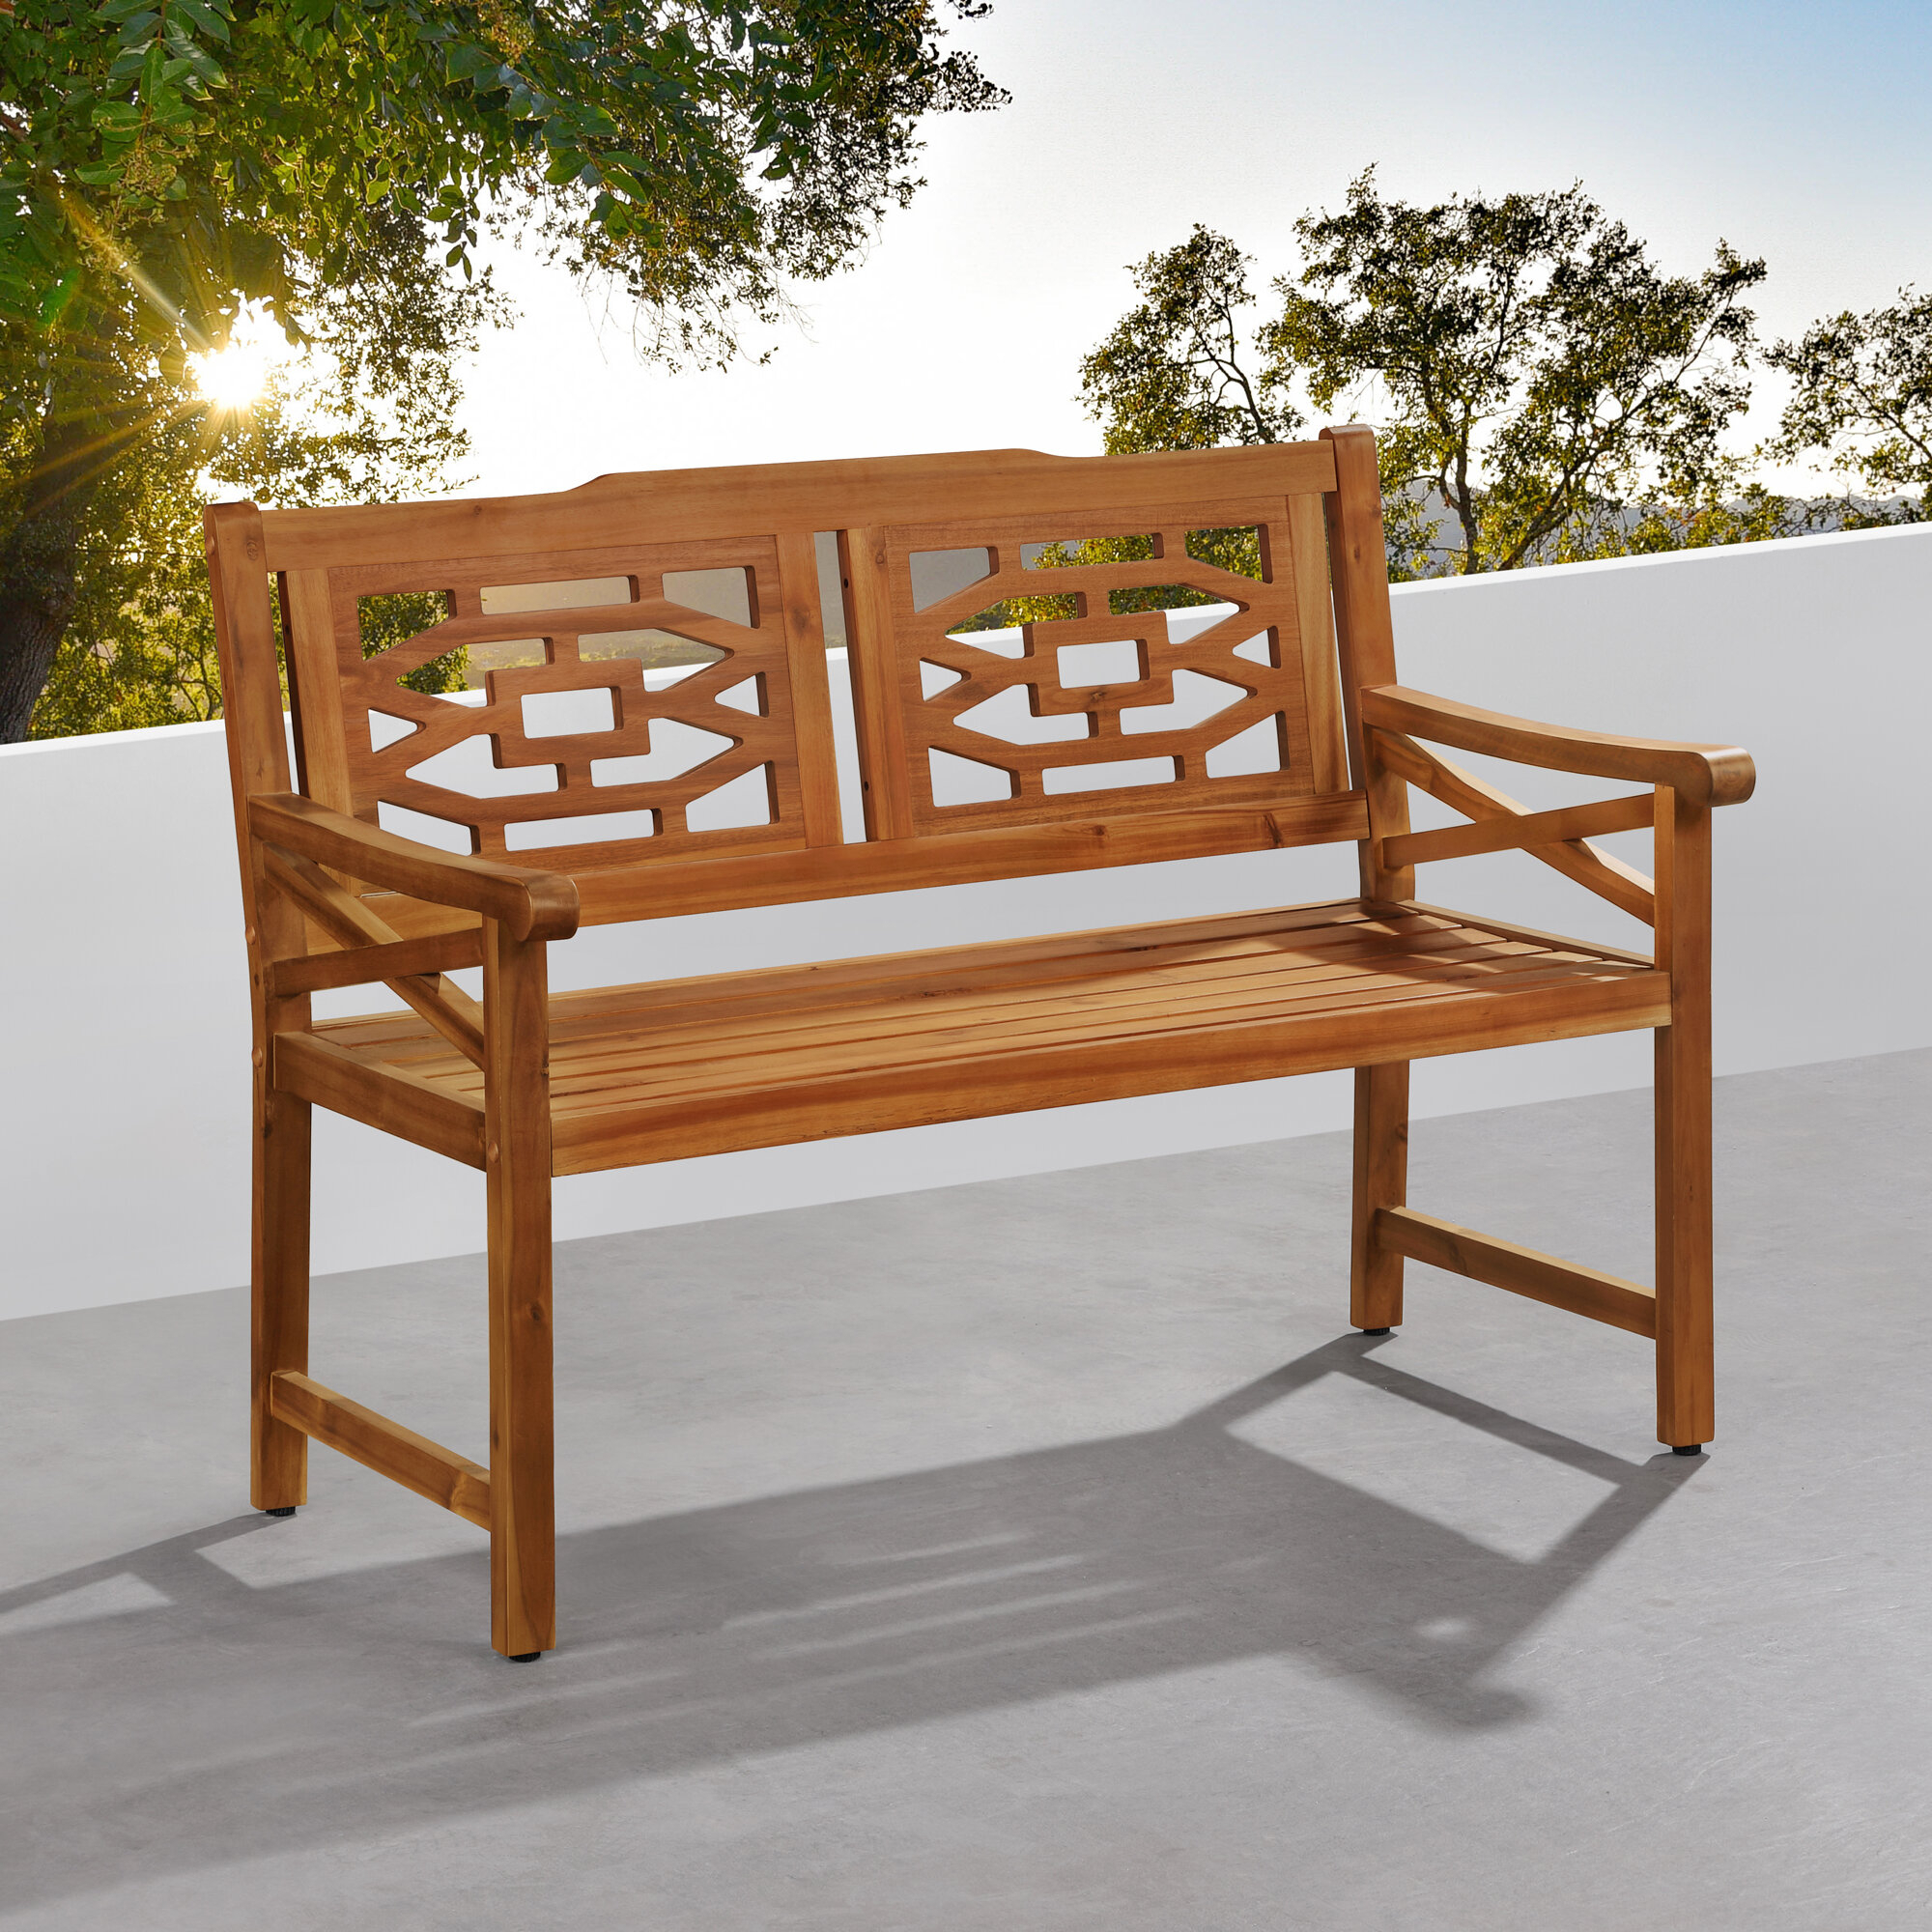 Malay Wooden Garden Bench Intended For Skoog Chevron Wooden Garden Benches (View 19 of 25)